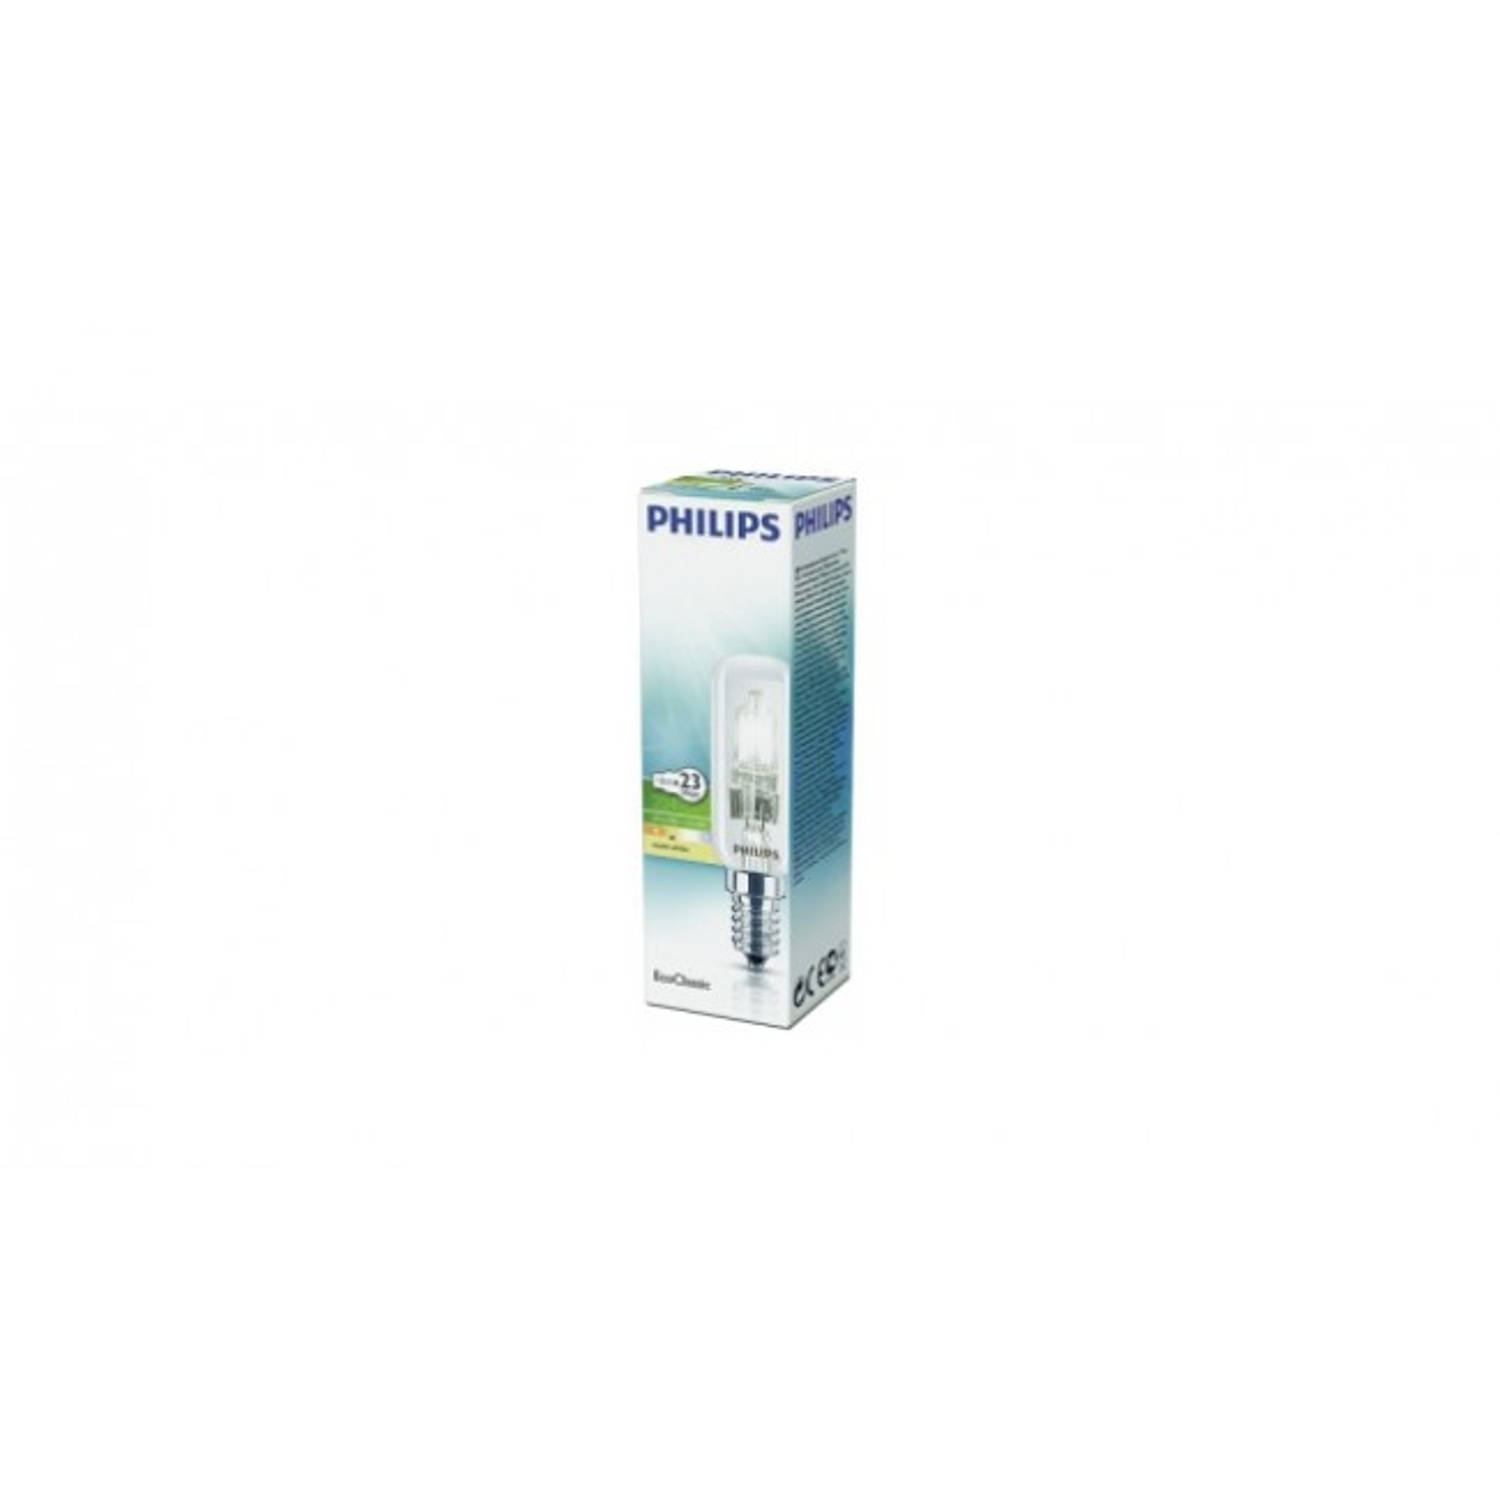 Philips EcoClassic halogeenlamp 230 V 18 W E14 warm wit